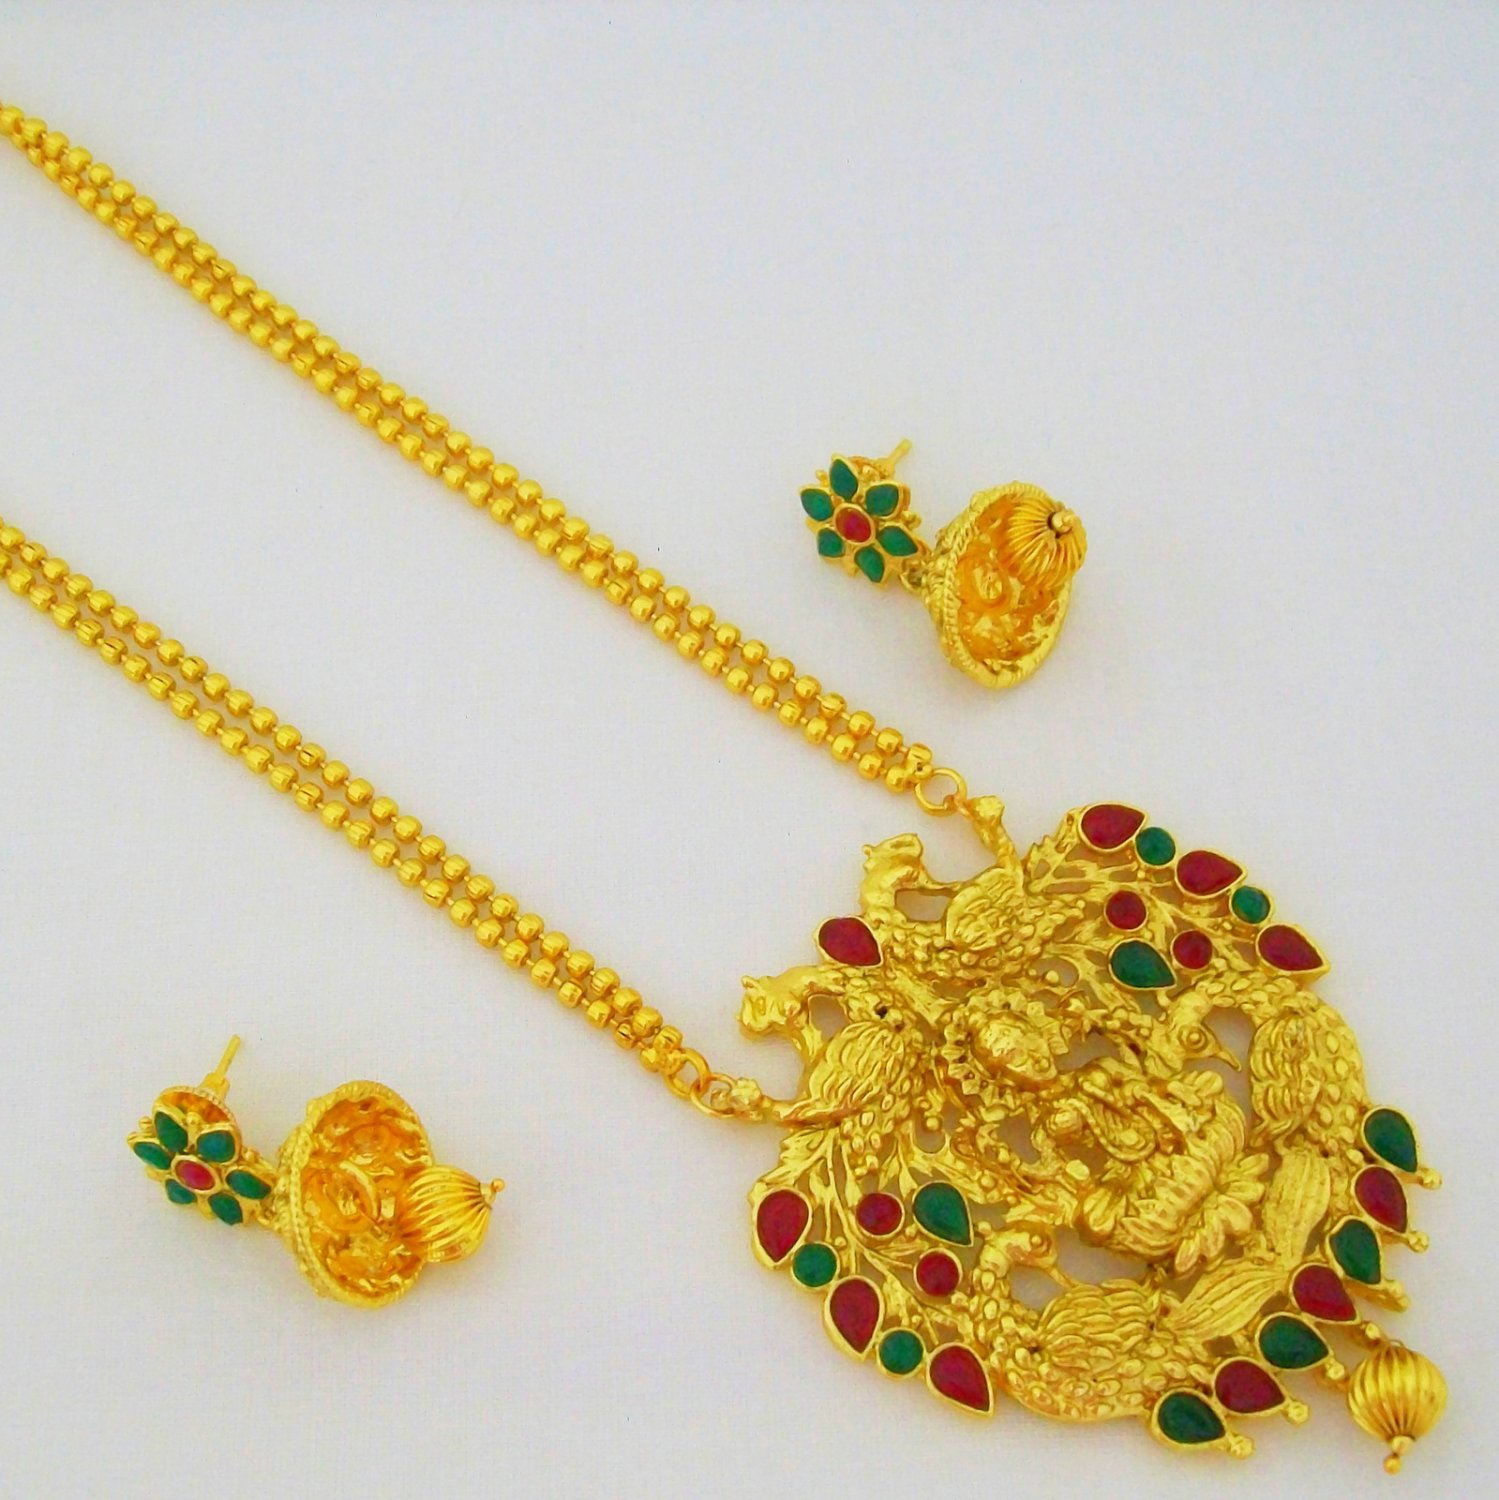 Gold Plated Lakshmi Engraved Long Chain Pendant Stone Necklace Set Indian Temple Jewelry